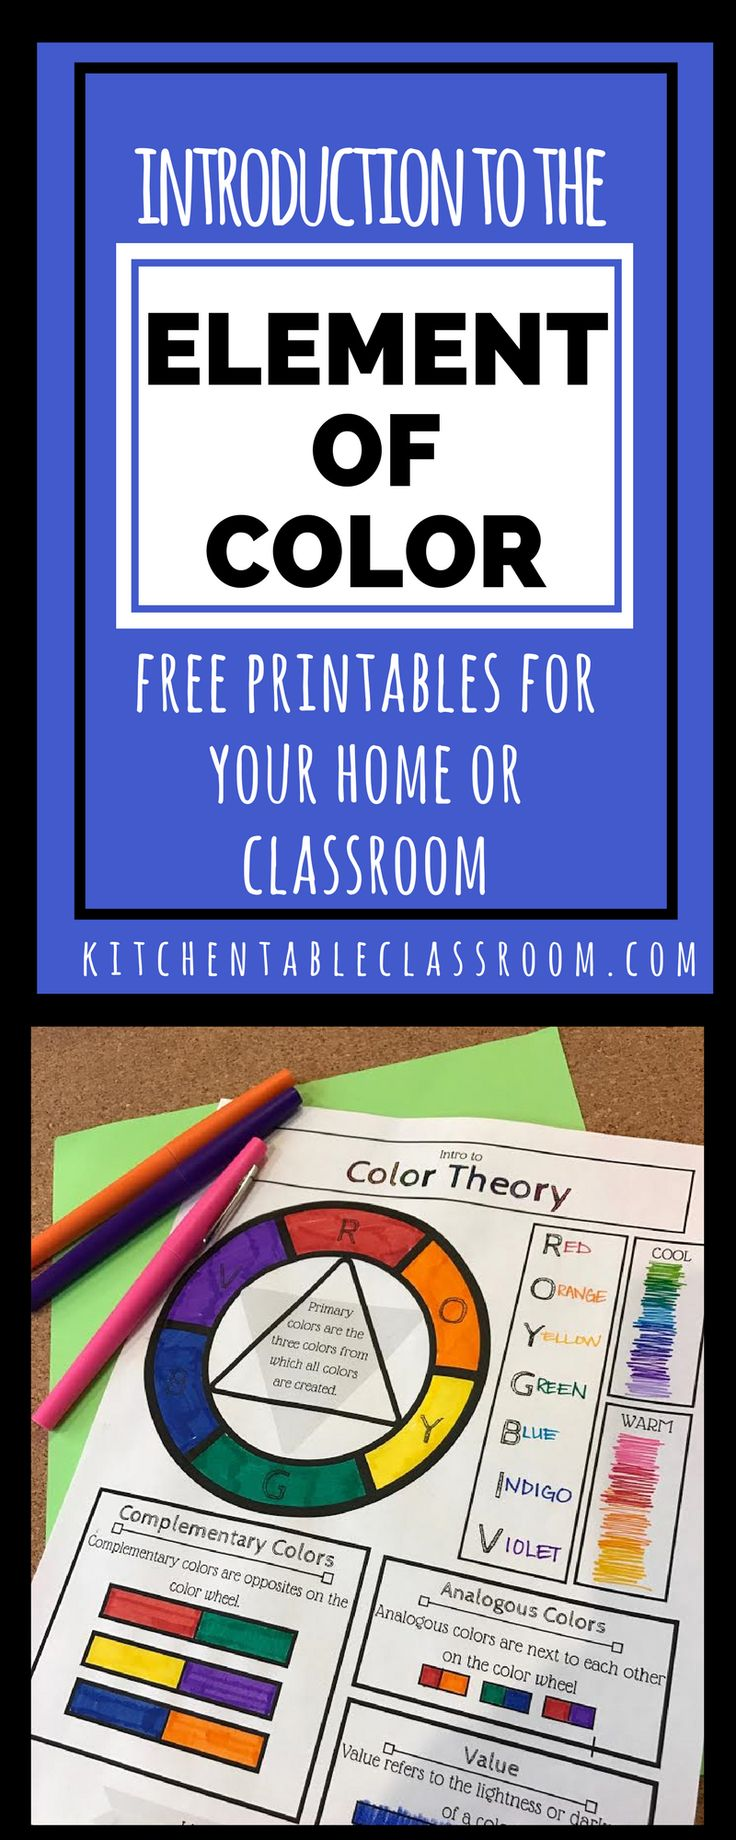 Color theory online games - Color Is A Language Even The Smallest People Understand This Free Printable Color Wheel Is